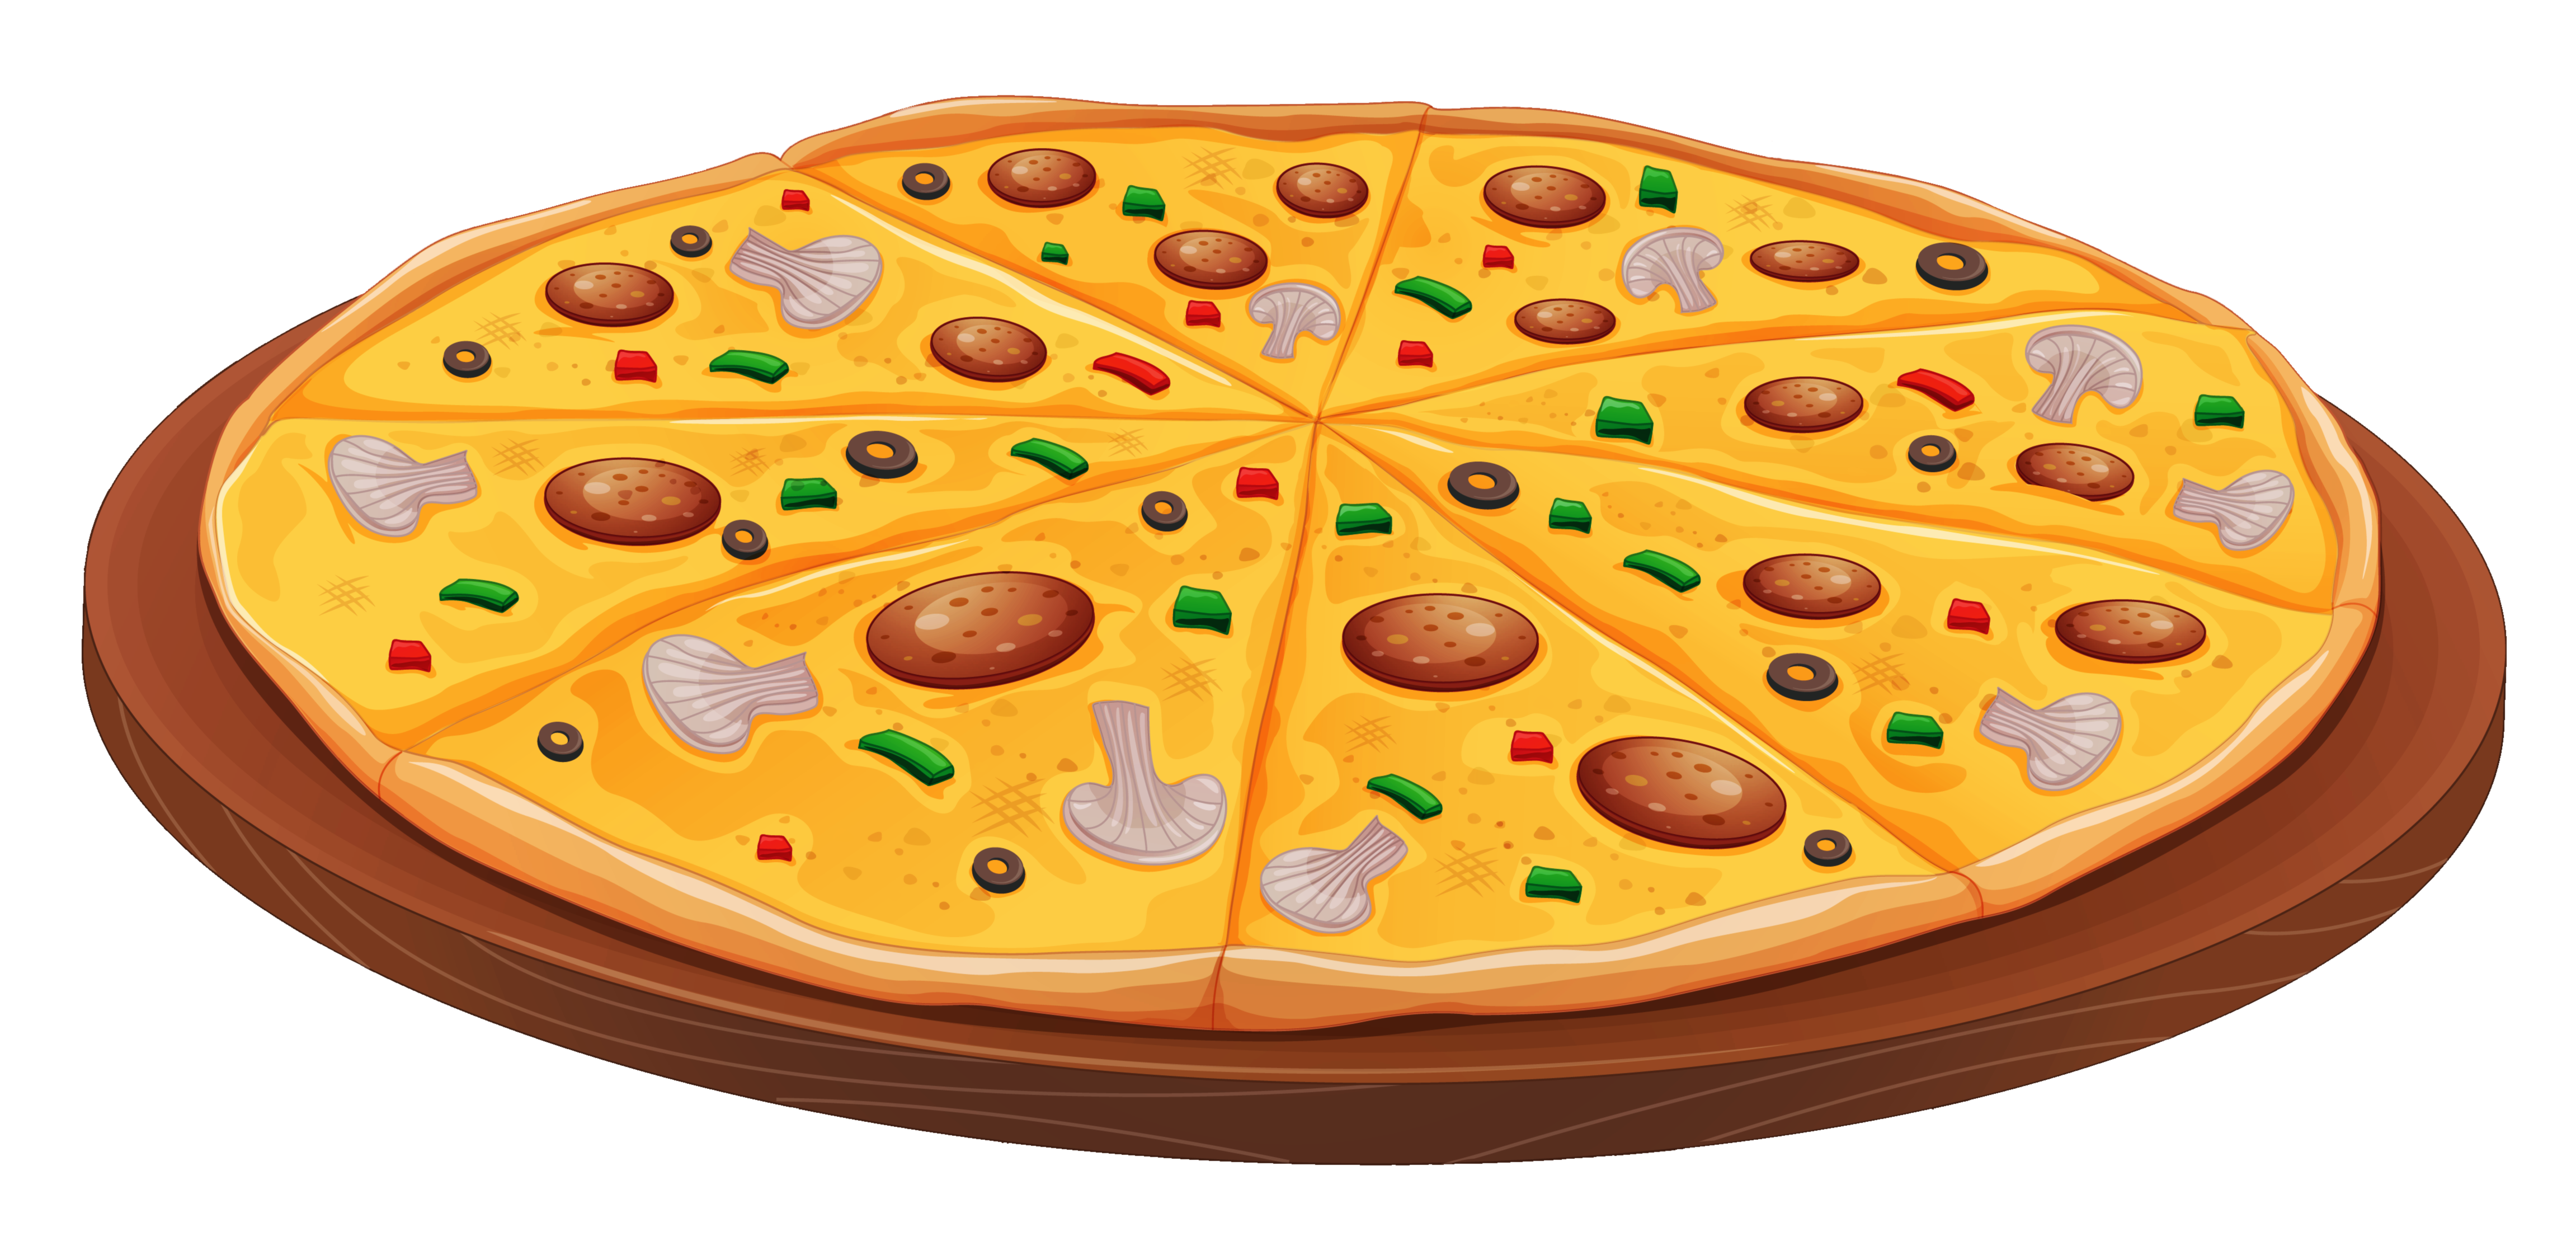 Pizza with mushrooms clipart